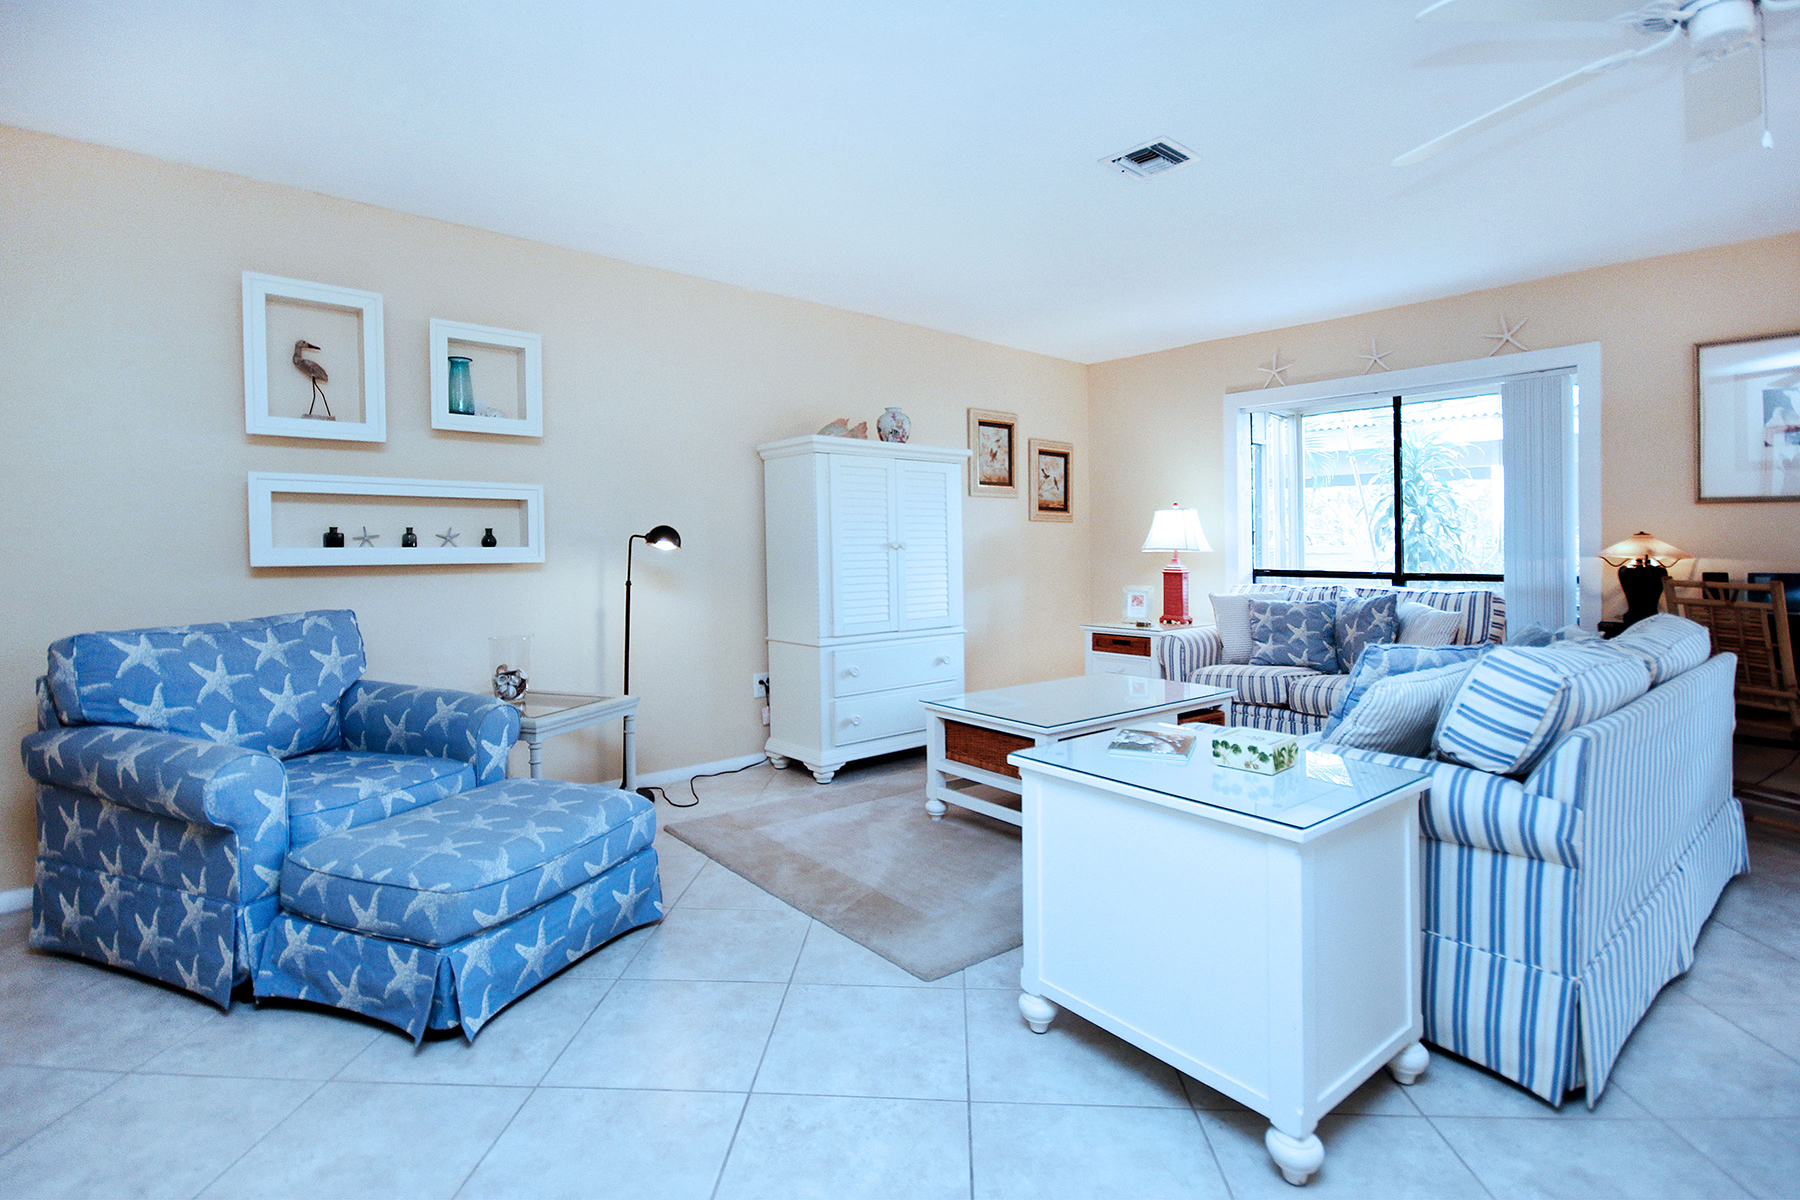 Condominium for Sale at 5117 Sea Bell Rd , F106, Sanibel, FL 33957 5117 Sea Bell Rd F106, Sanibel, Florida 33957 United States